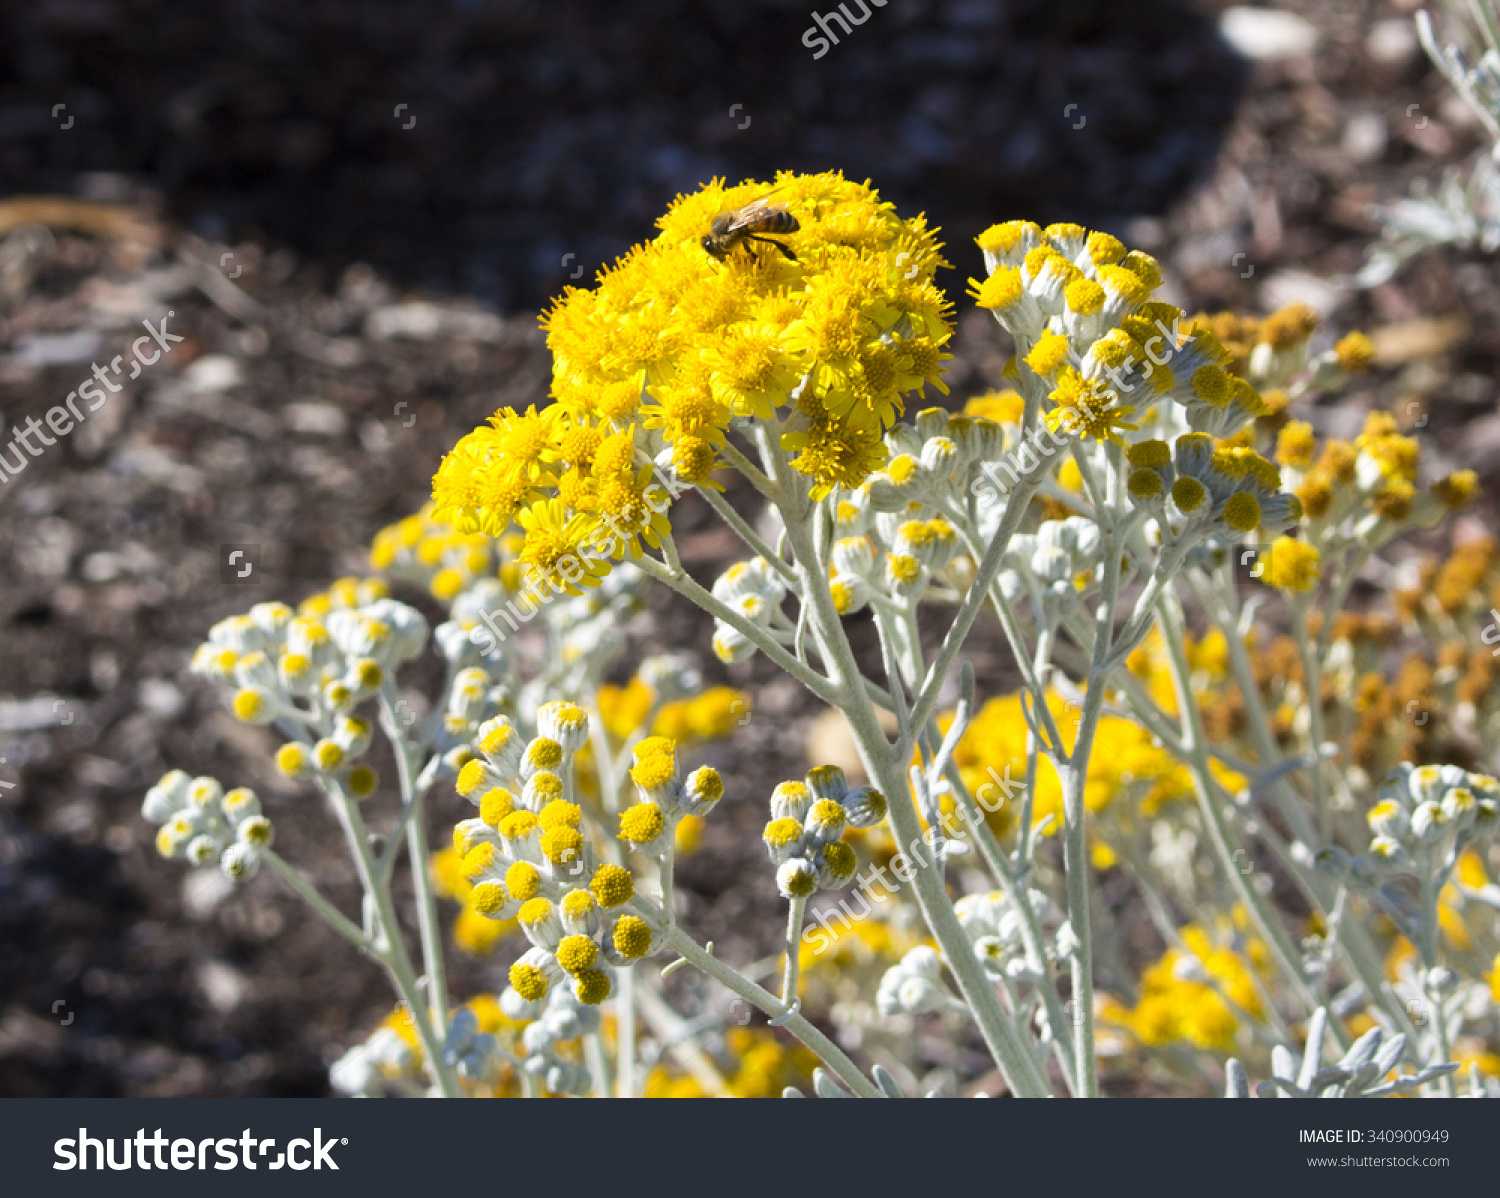 Bee On Bright Yellow Flowers Hardy Stock Photo 340900949.